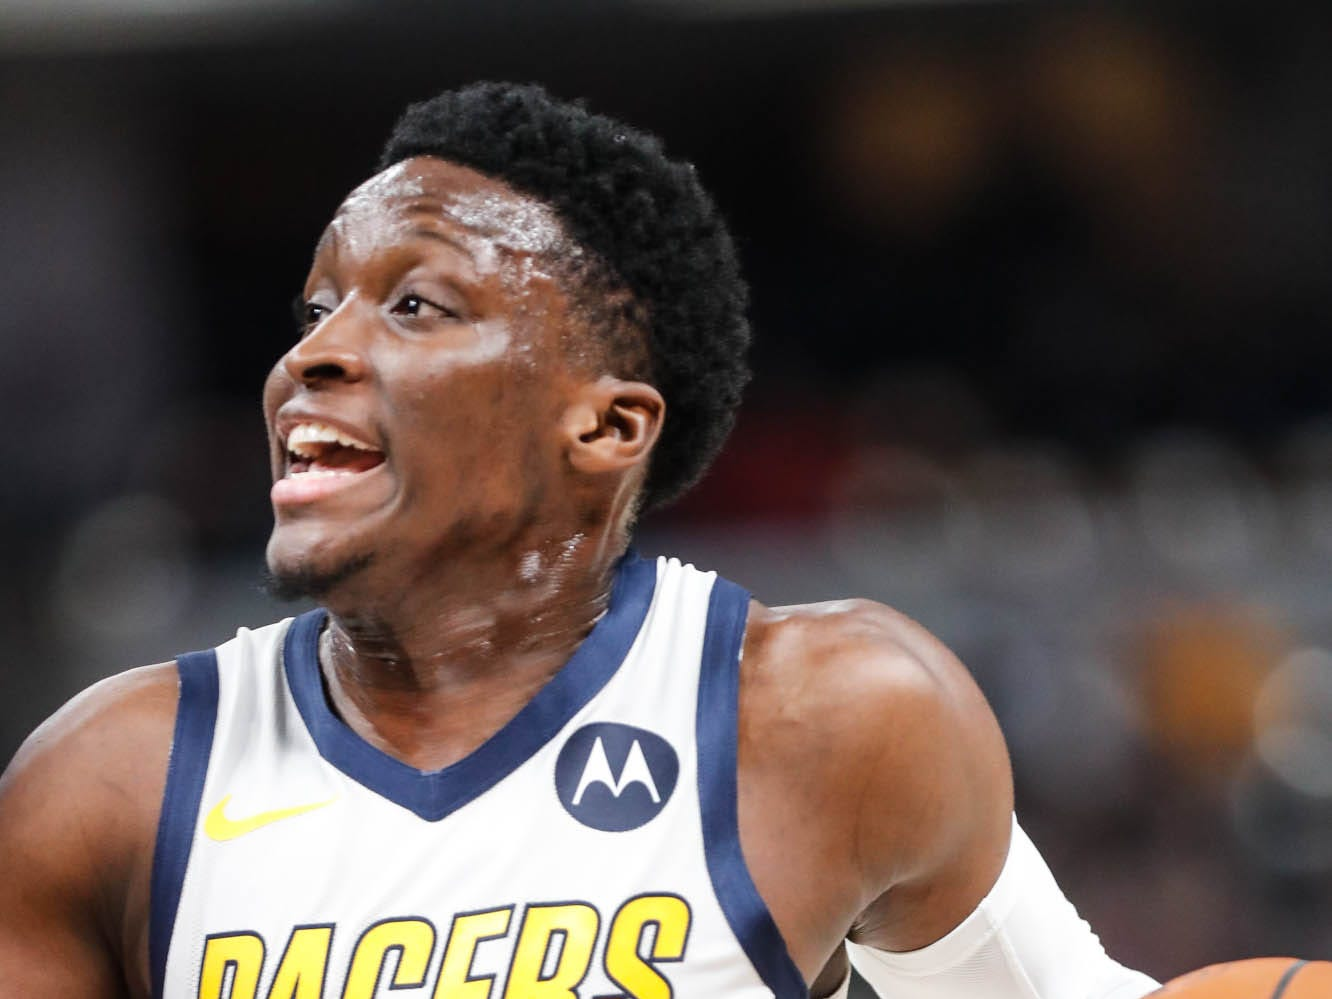 Indiana Pacer's guard Victor Oladipo (4) drives past another player to the hoop during a game between the Indiana Pacers and the Detroit Pistons at at Bankers Life Fieldhouse in Indianapolis on Friday, Dec. 28, 2018.